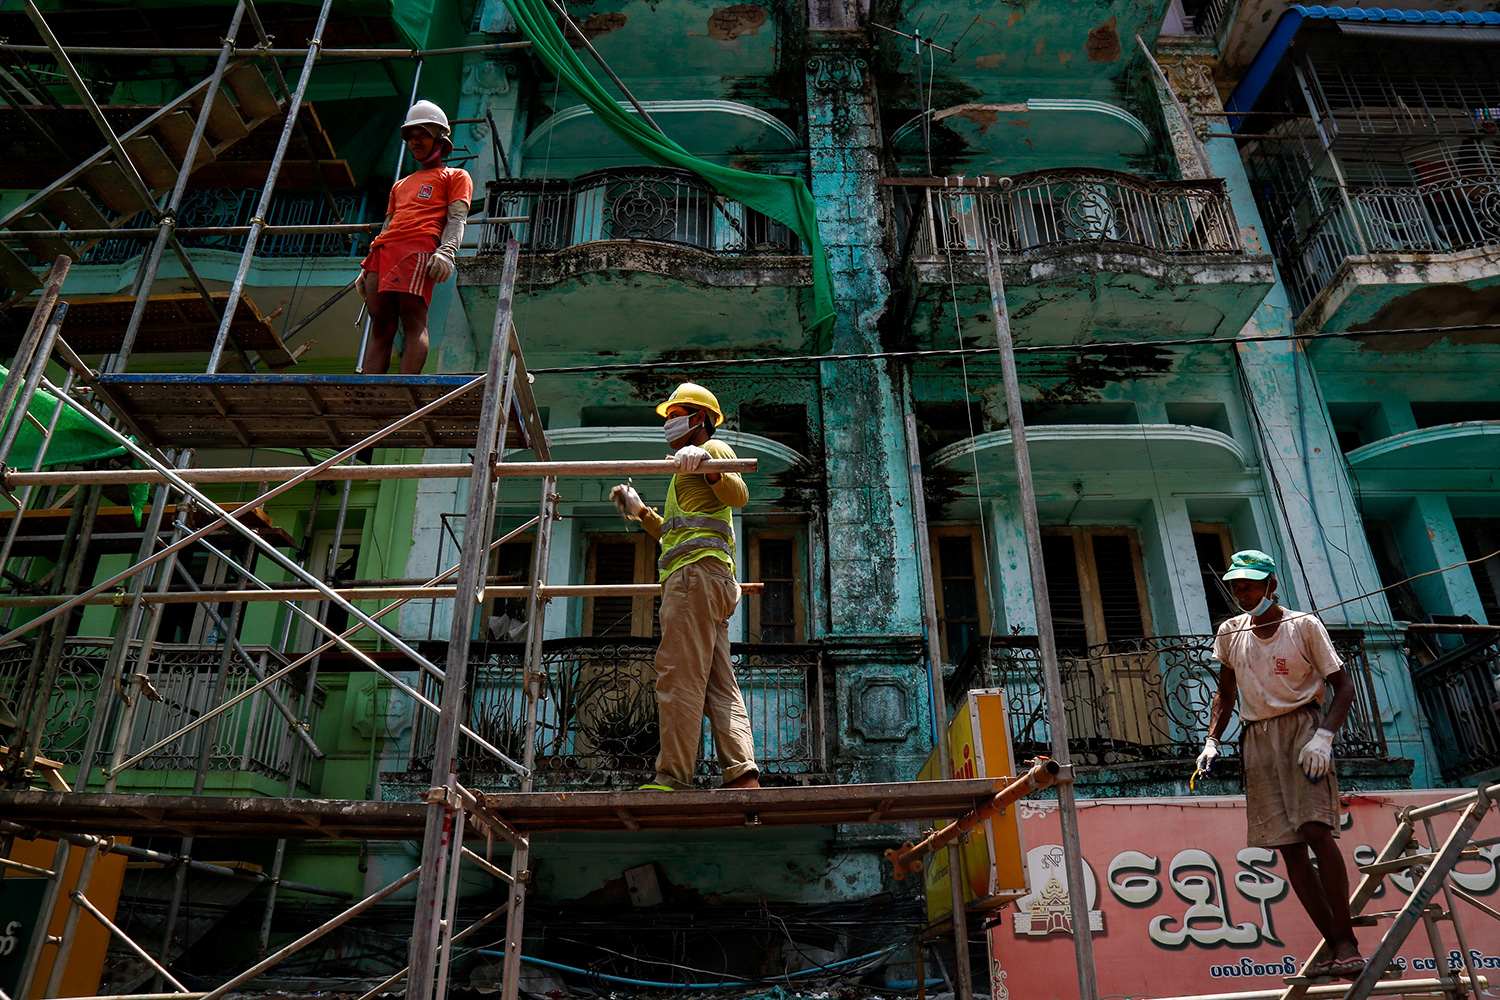 Construction workers stand on scaffolding in front of a building in Yangon, Myanmar, on April 21. SAI AUNG MAIN/AFP via Getty Images